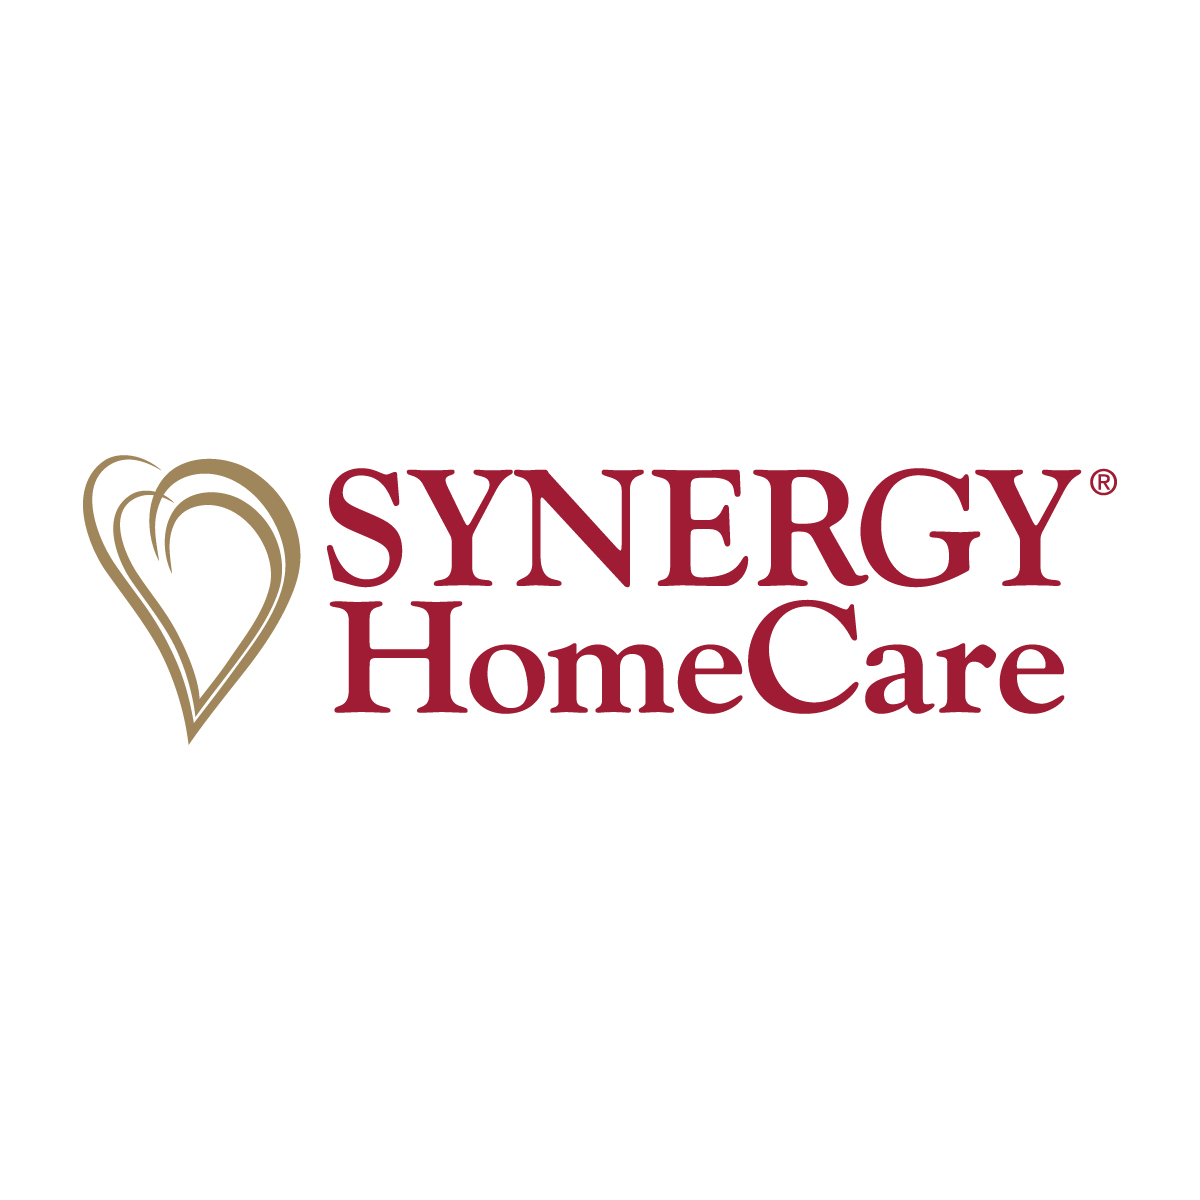 SYNERGY HomeCare image 1